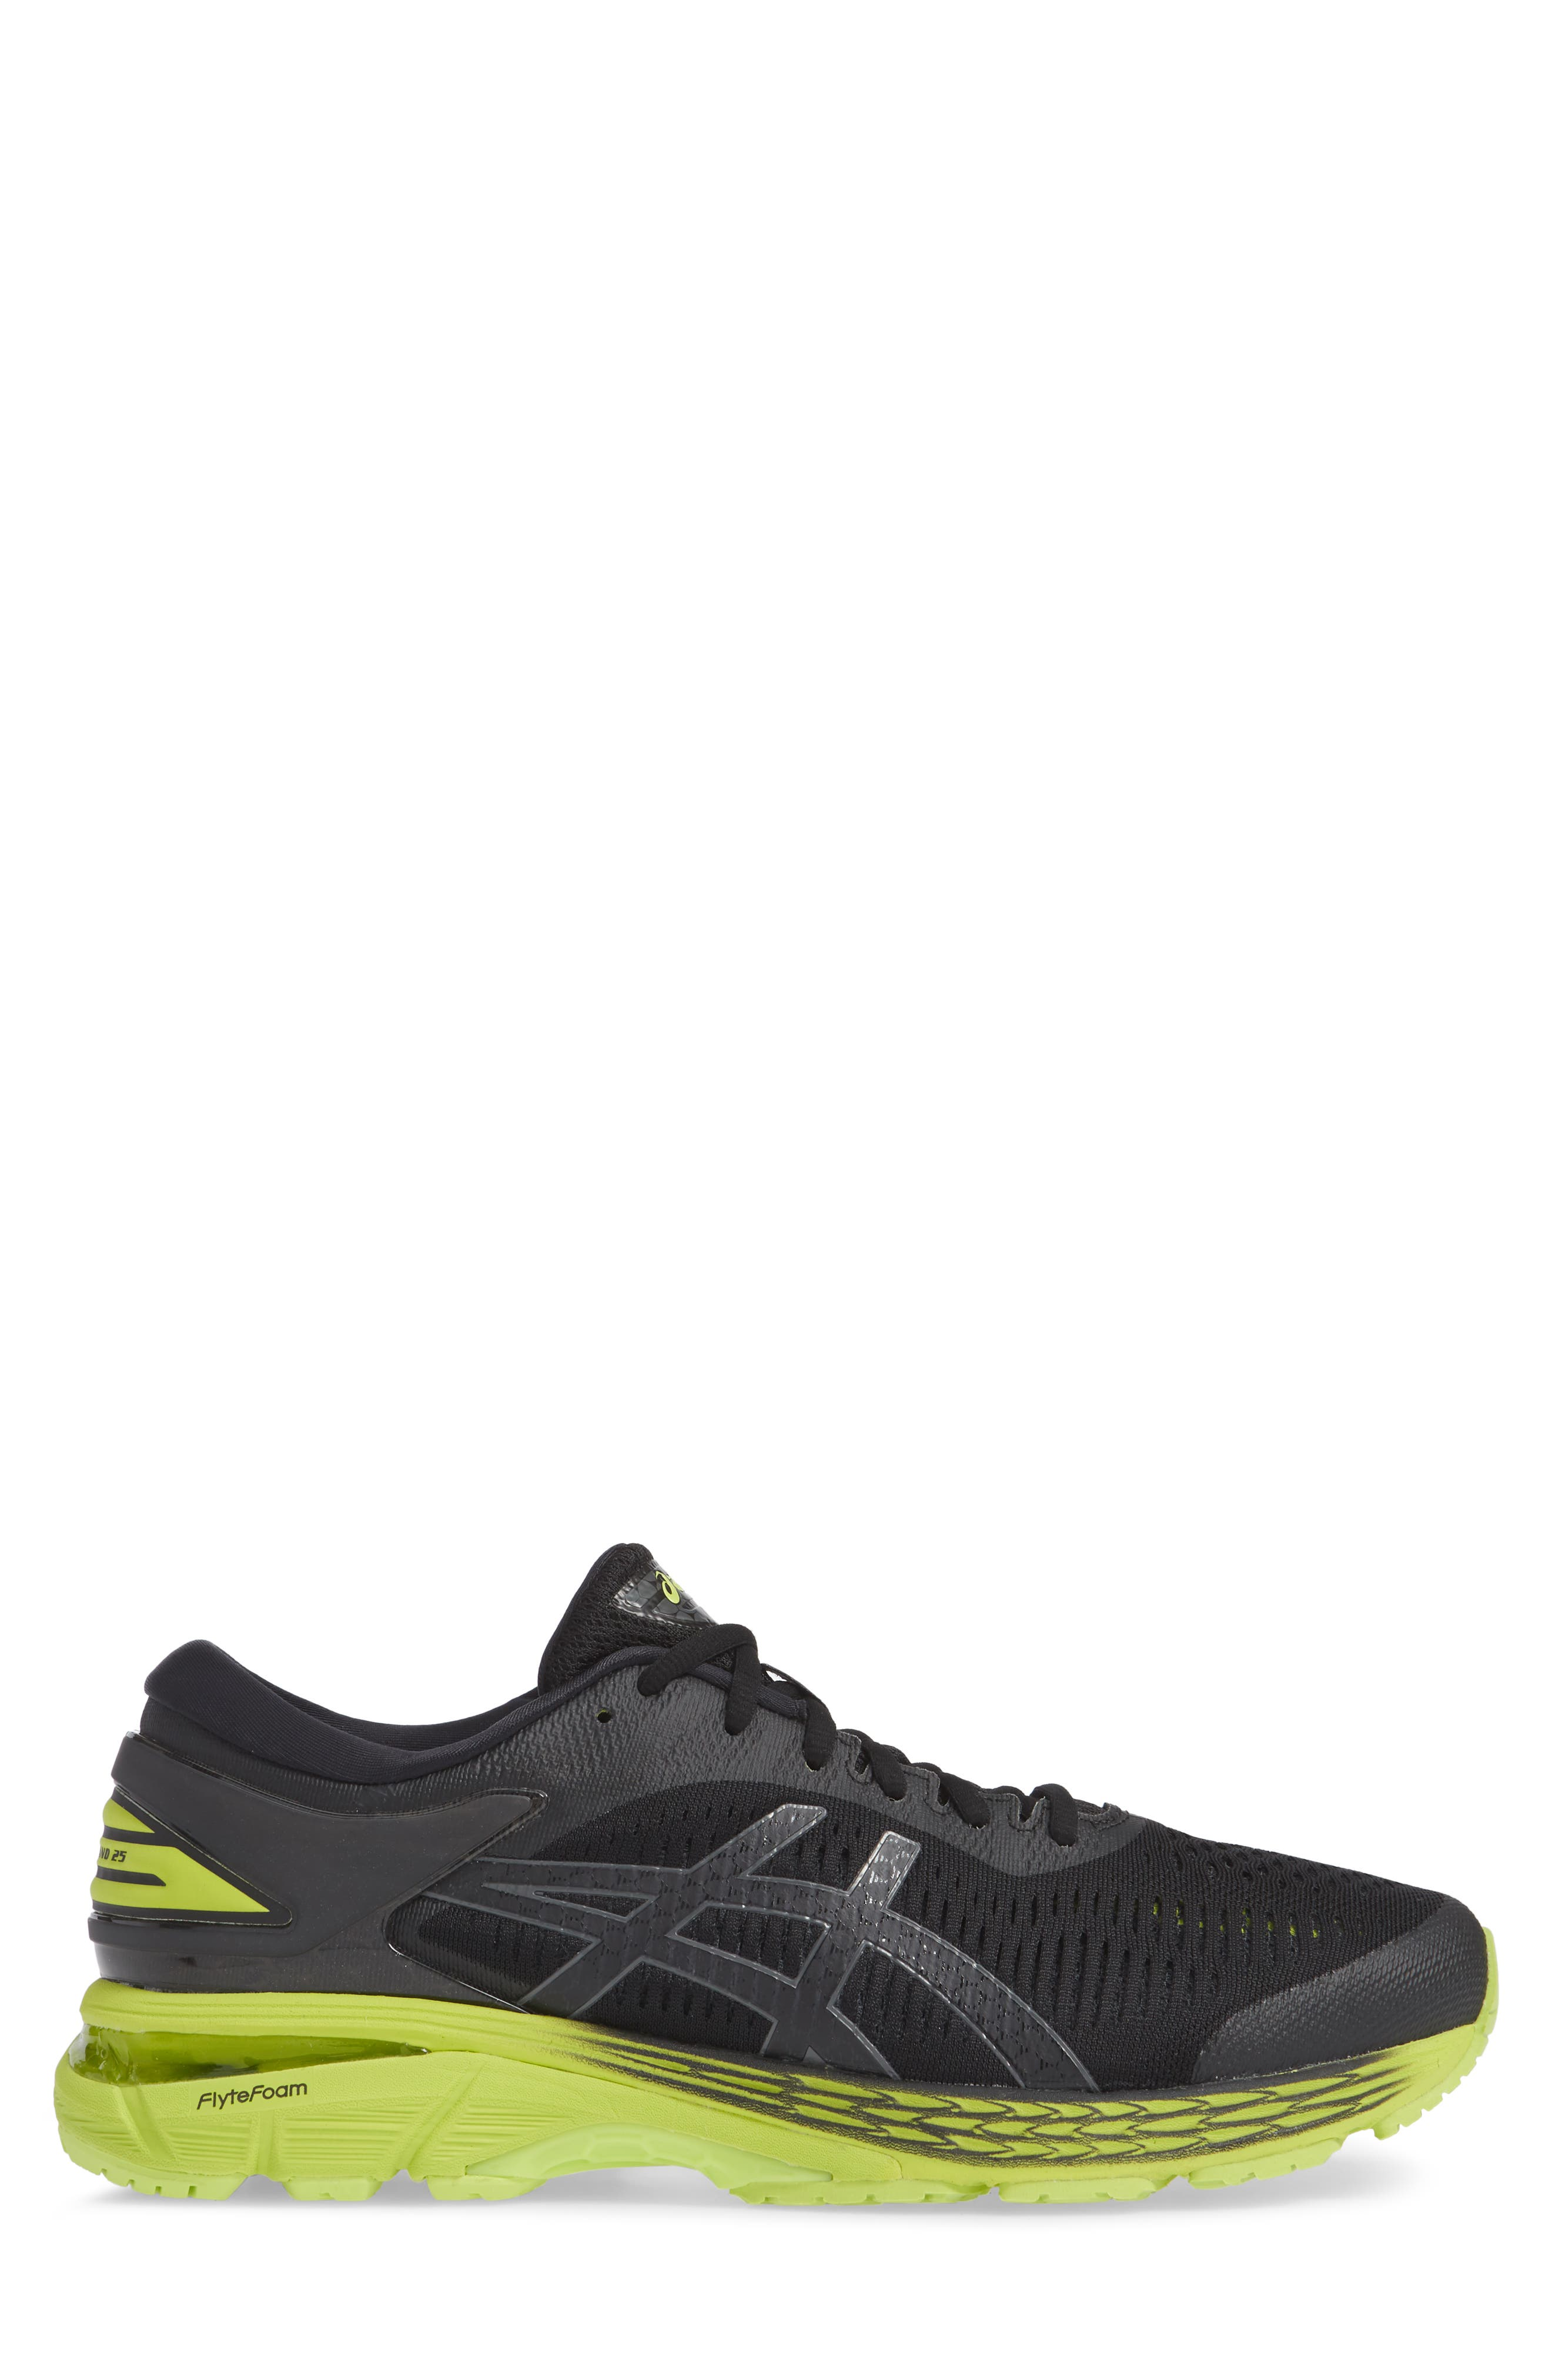 GEL-Kayano<sup>®</sup> 25 Running Shoe,                             Alternate thumbnail 3, color,                             BLACK/ NEON LIME